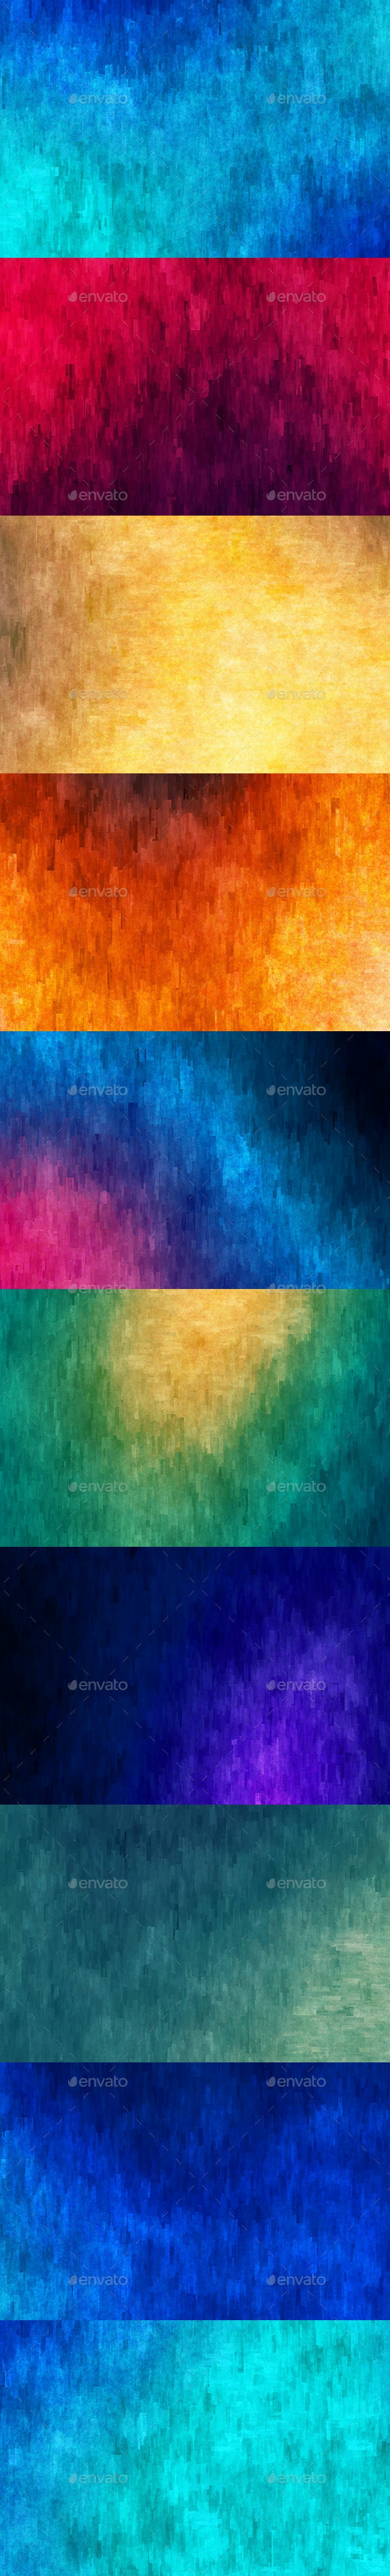 10 Grunge Backgrounds - Backgrounds Graphics